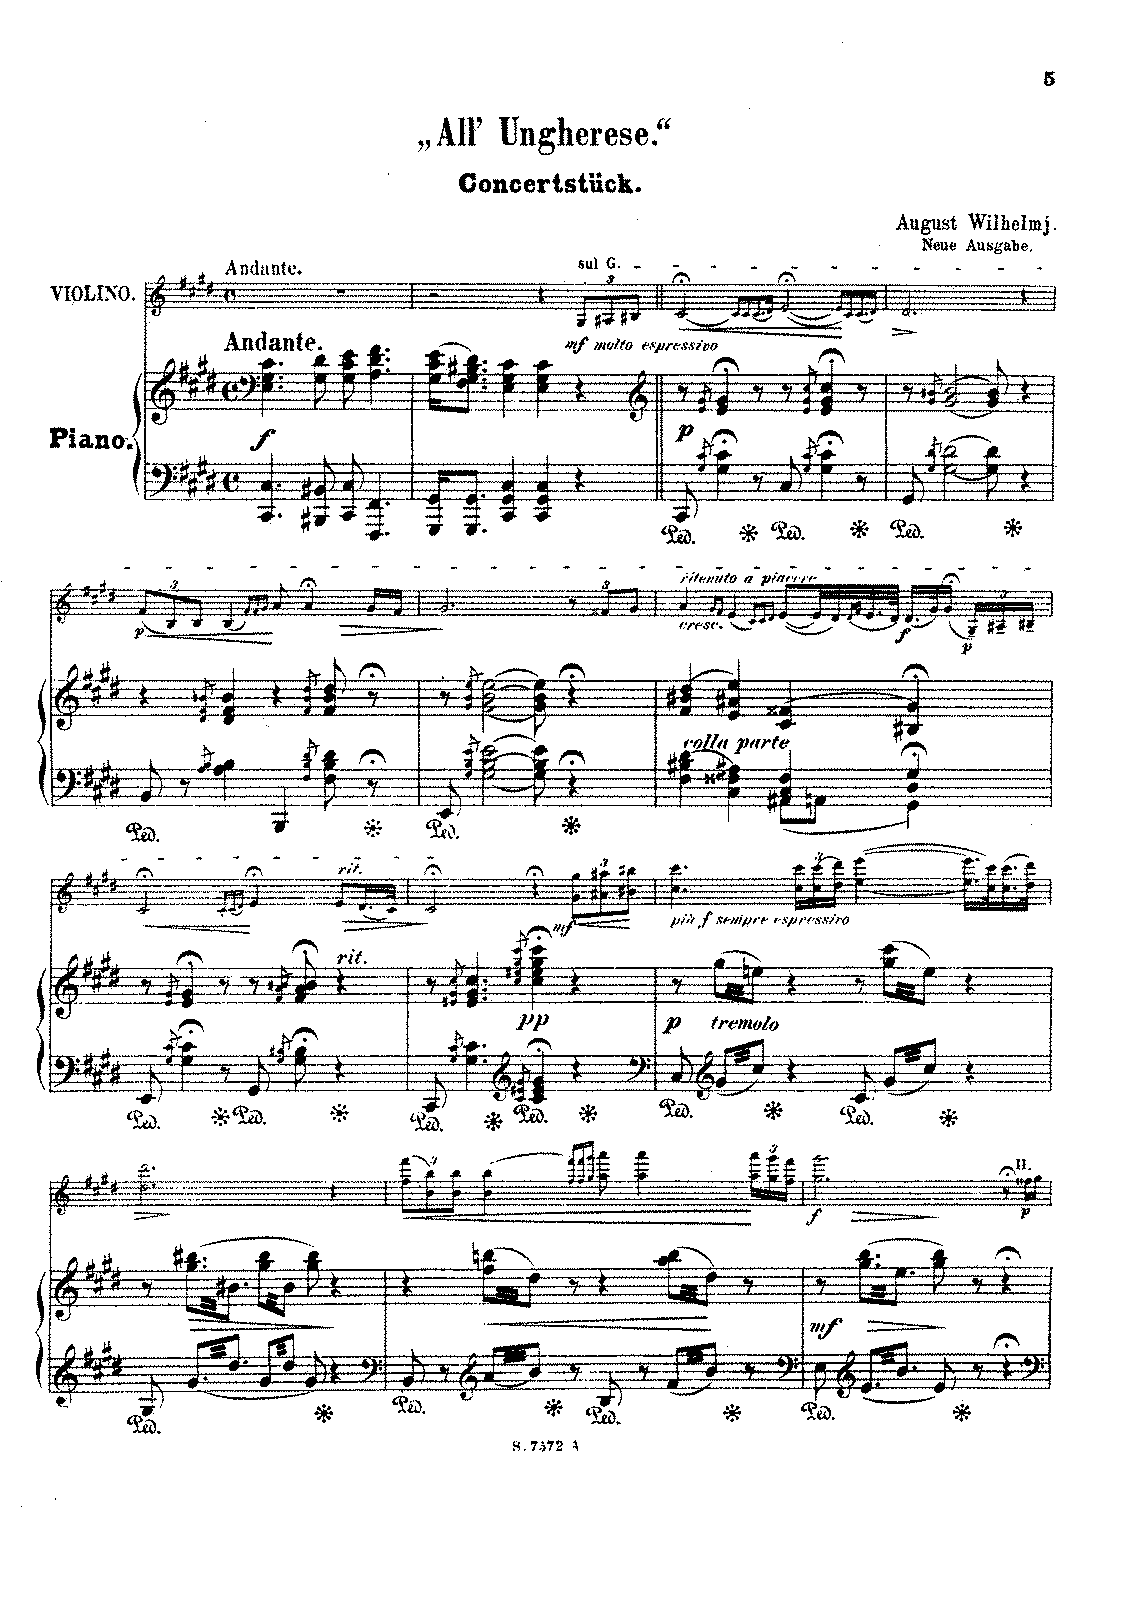 PMLP125215-Wilhelmj All Ungherese Piano.pdf